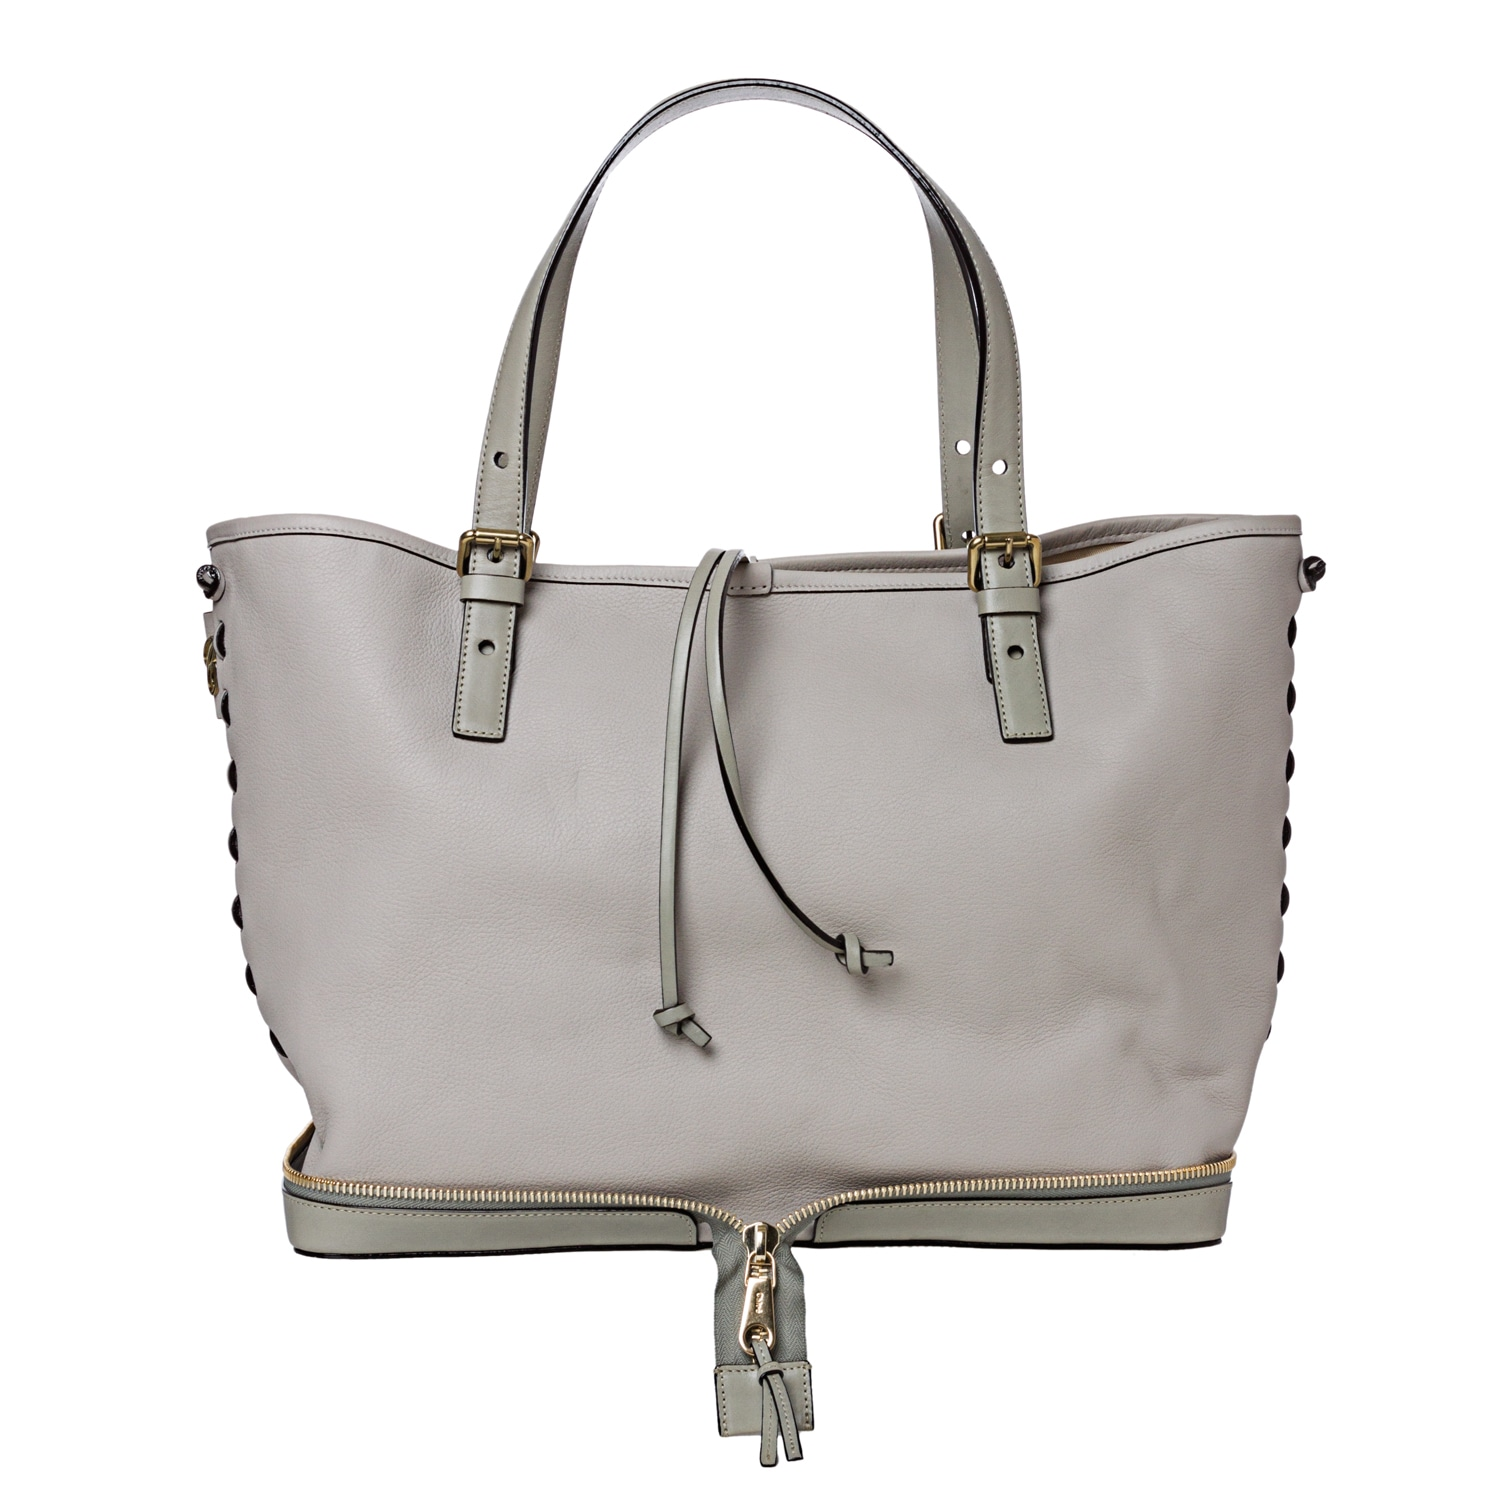 Chloe 'Ellen Moyen' Grey Leather Tote Bag - Thumbnail 0